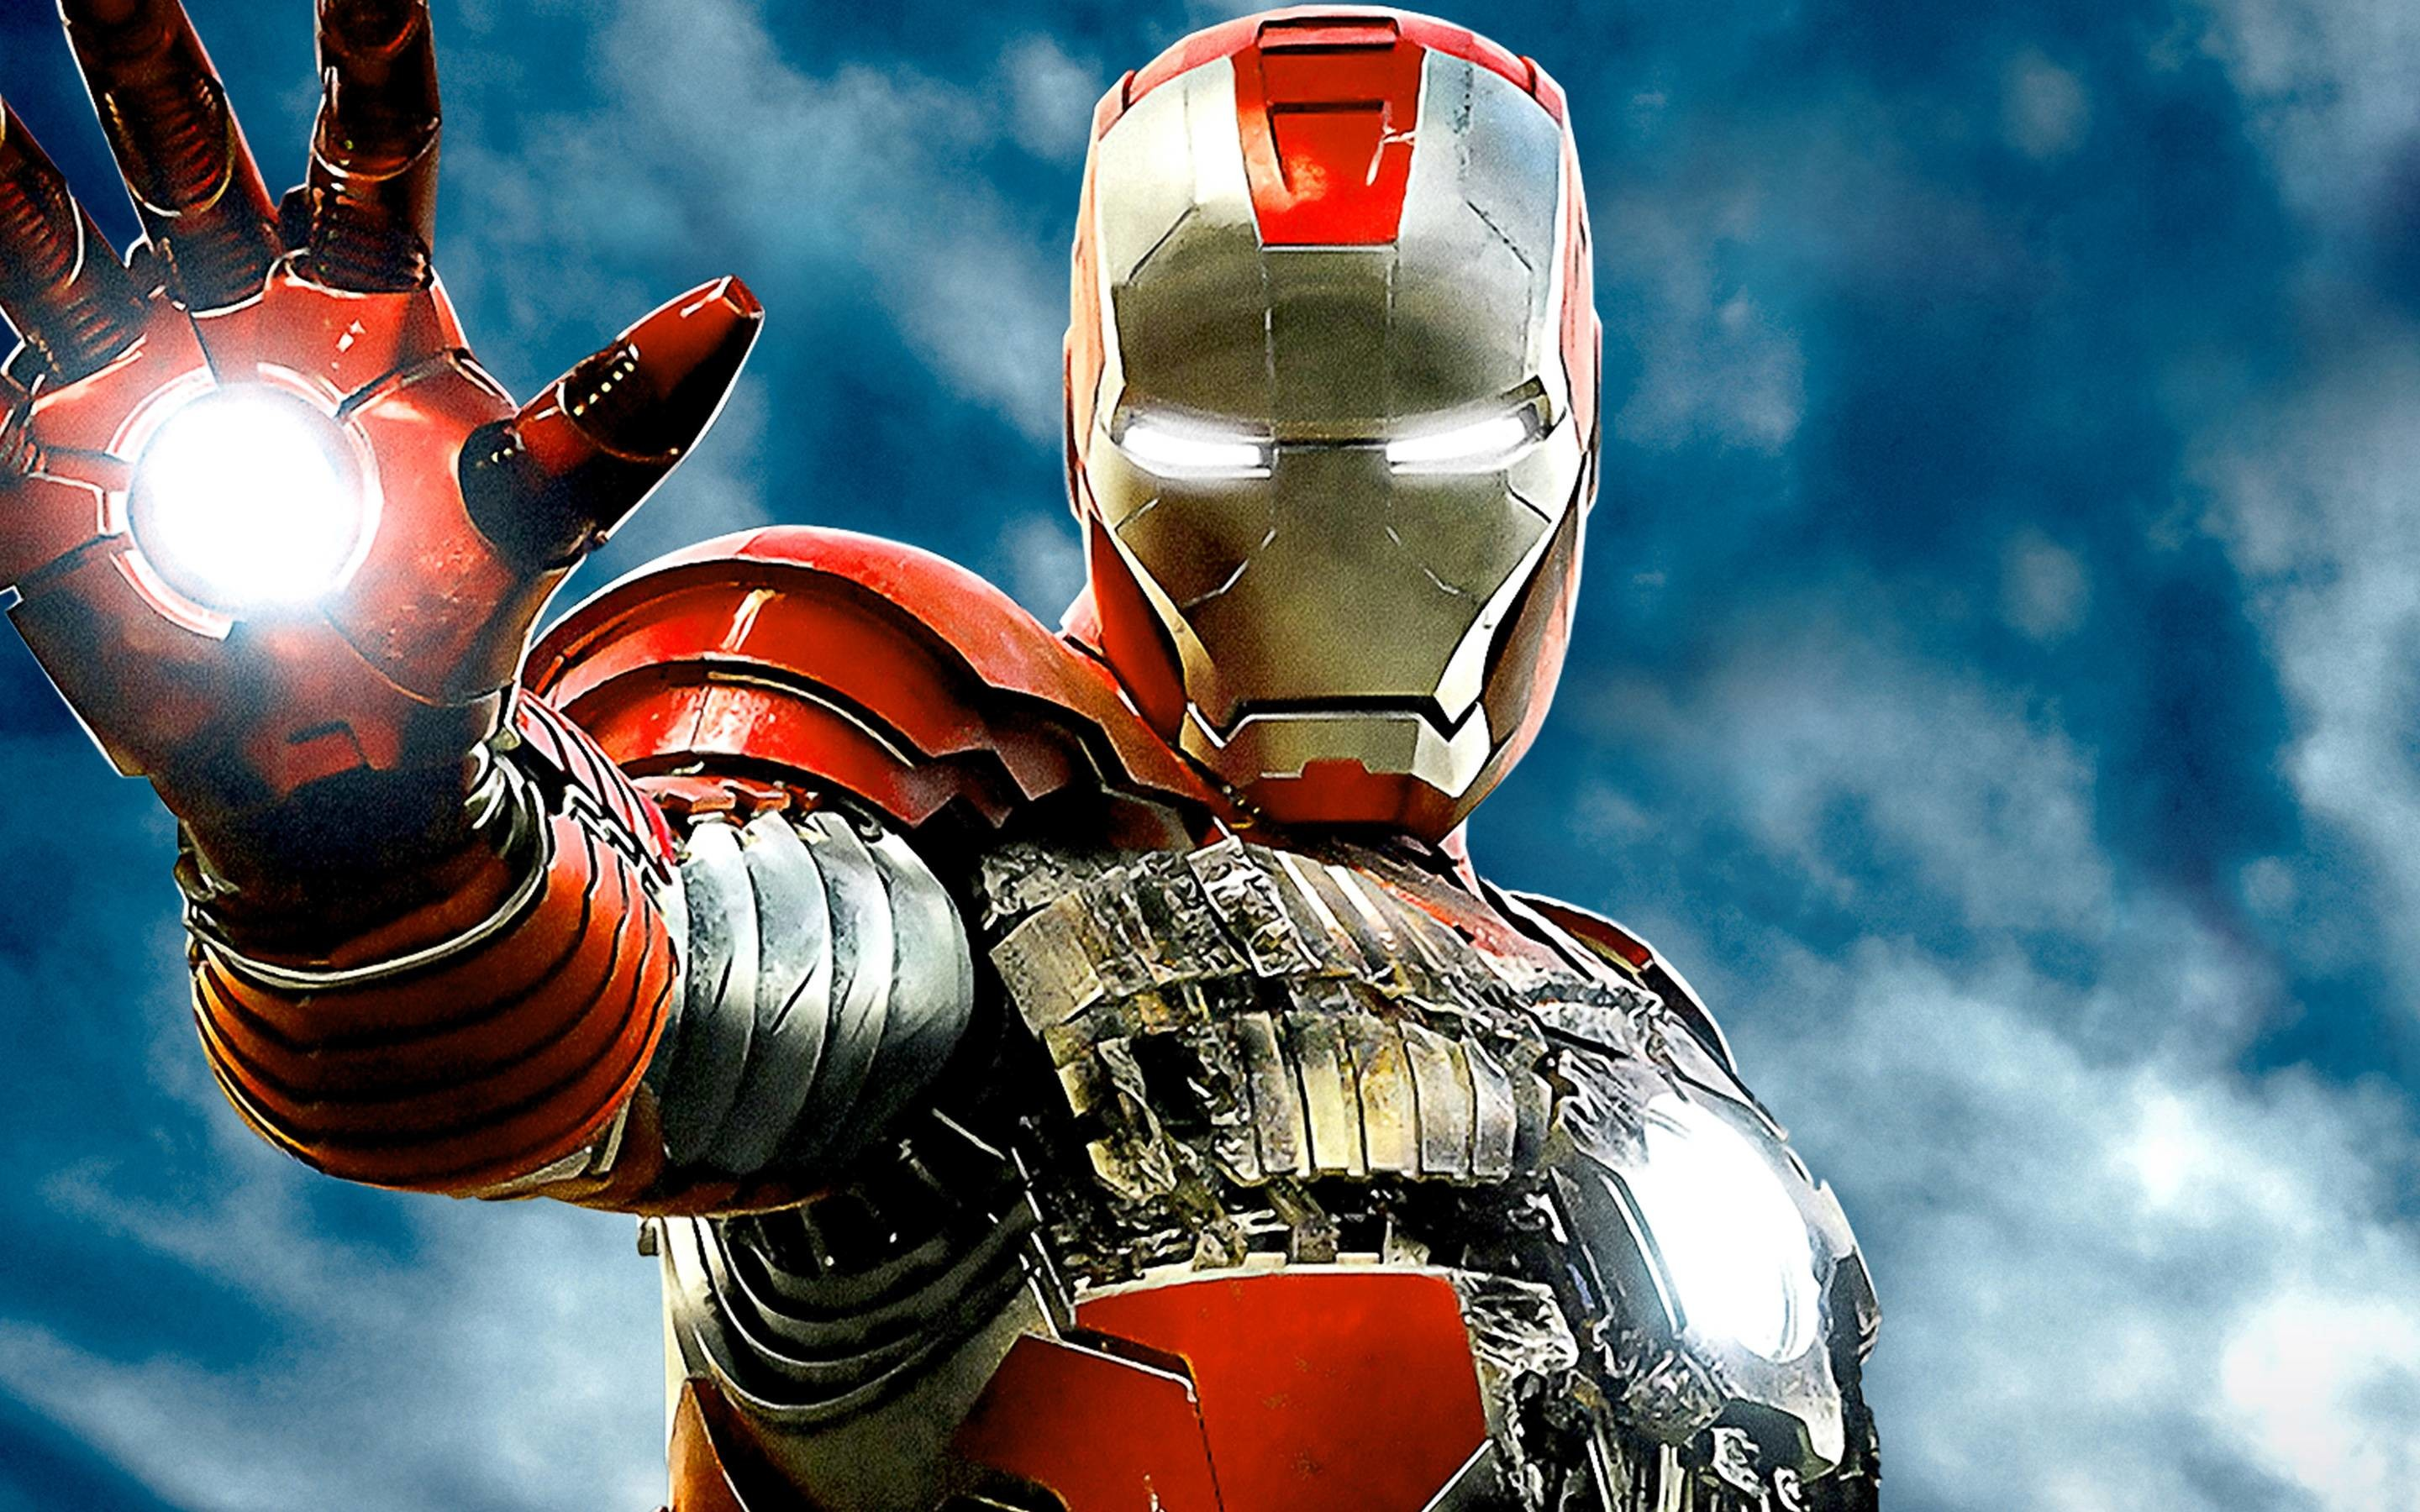 Iron Man Wallpapers – Full HD wallpaper search – page 12